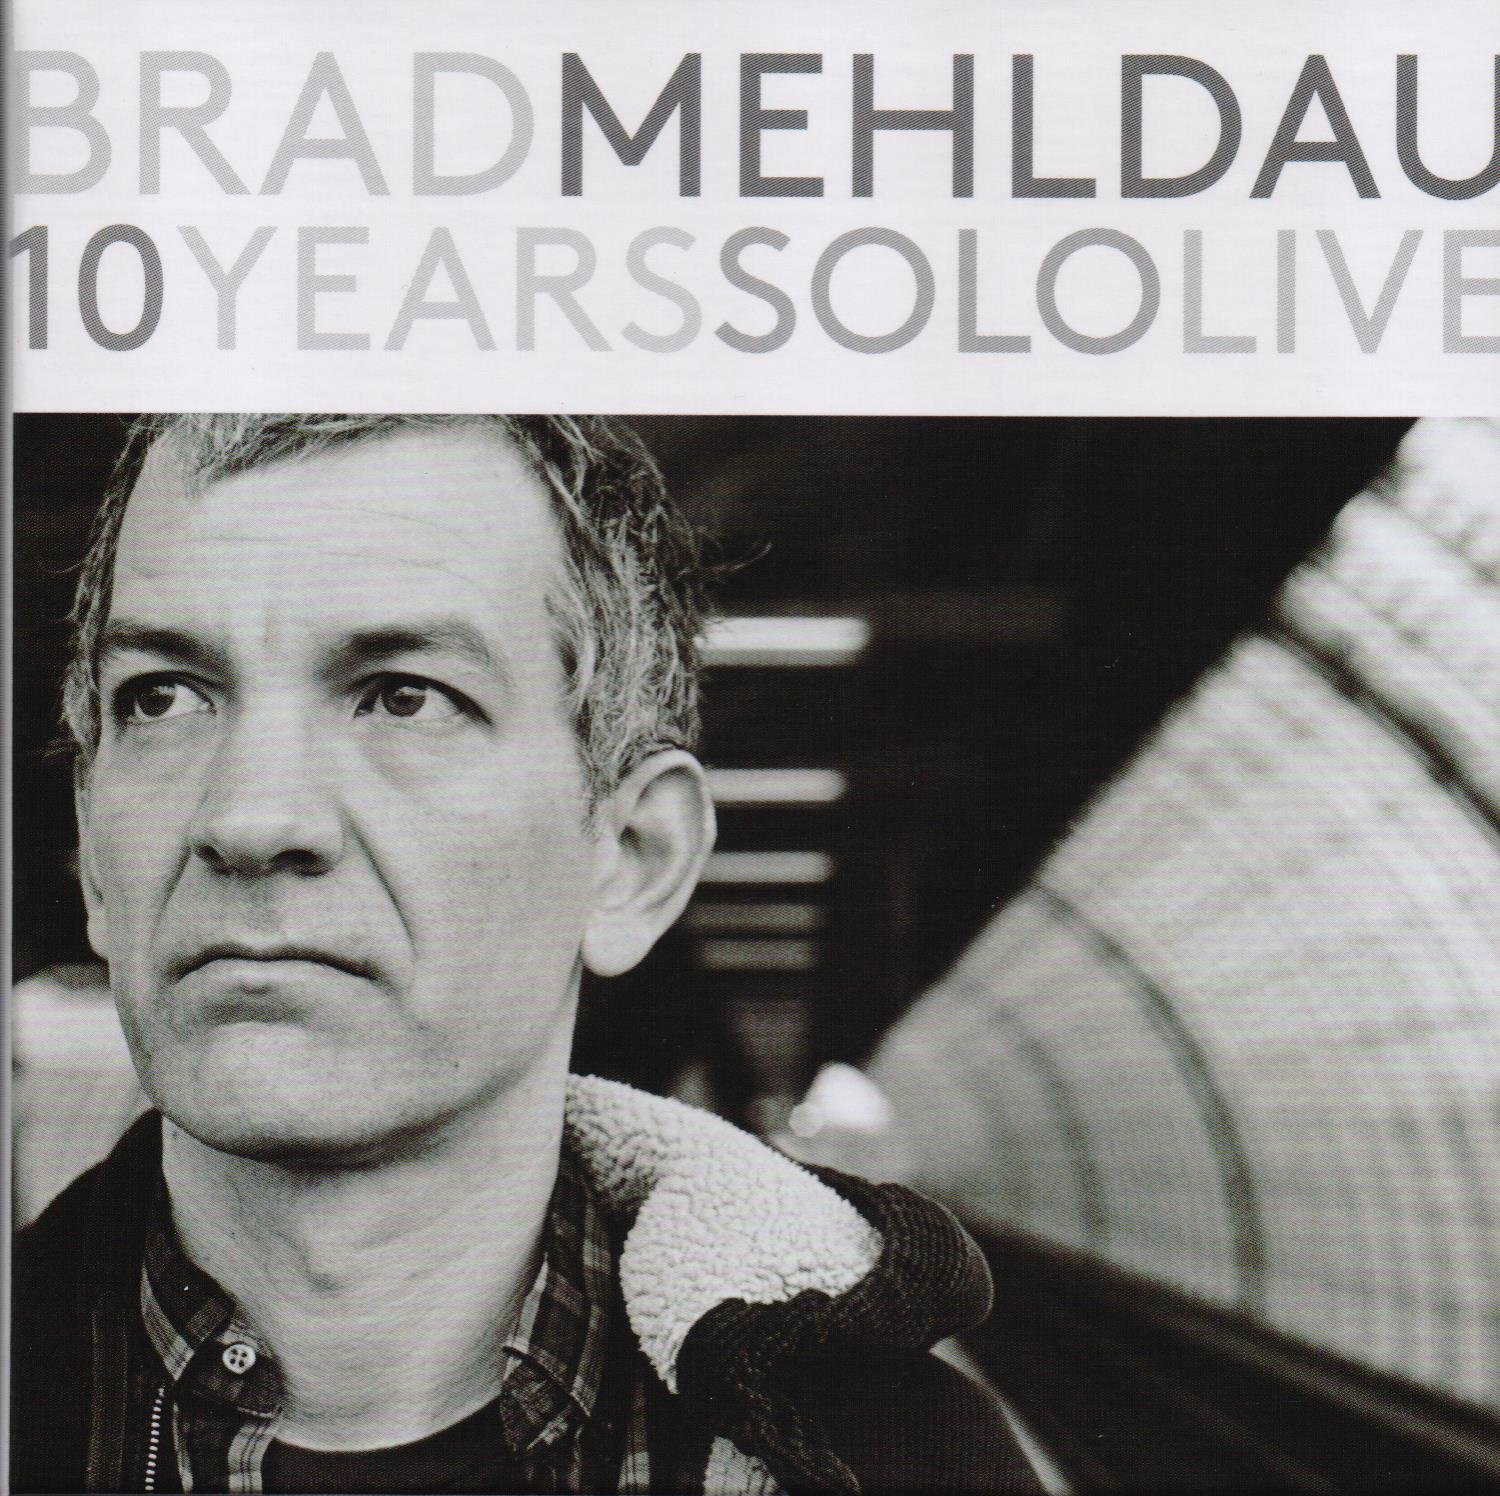 10 Years Solo Live (4CD Boxset) by Nonesuch (USA)